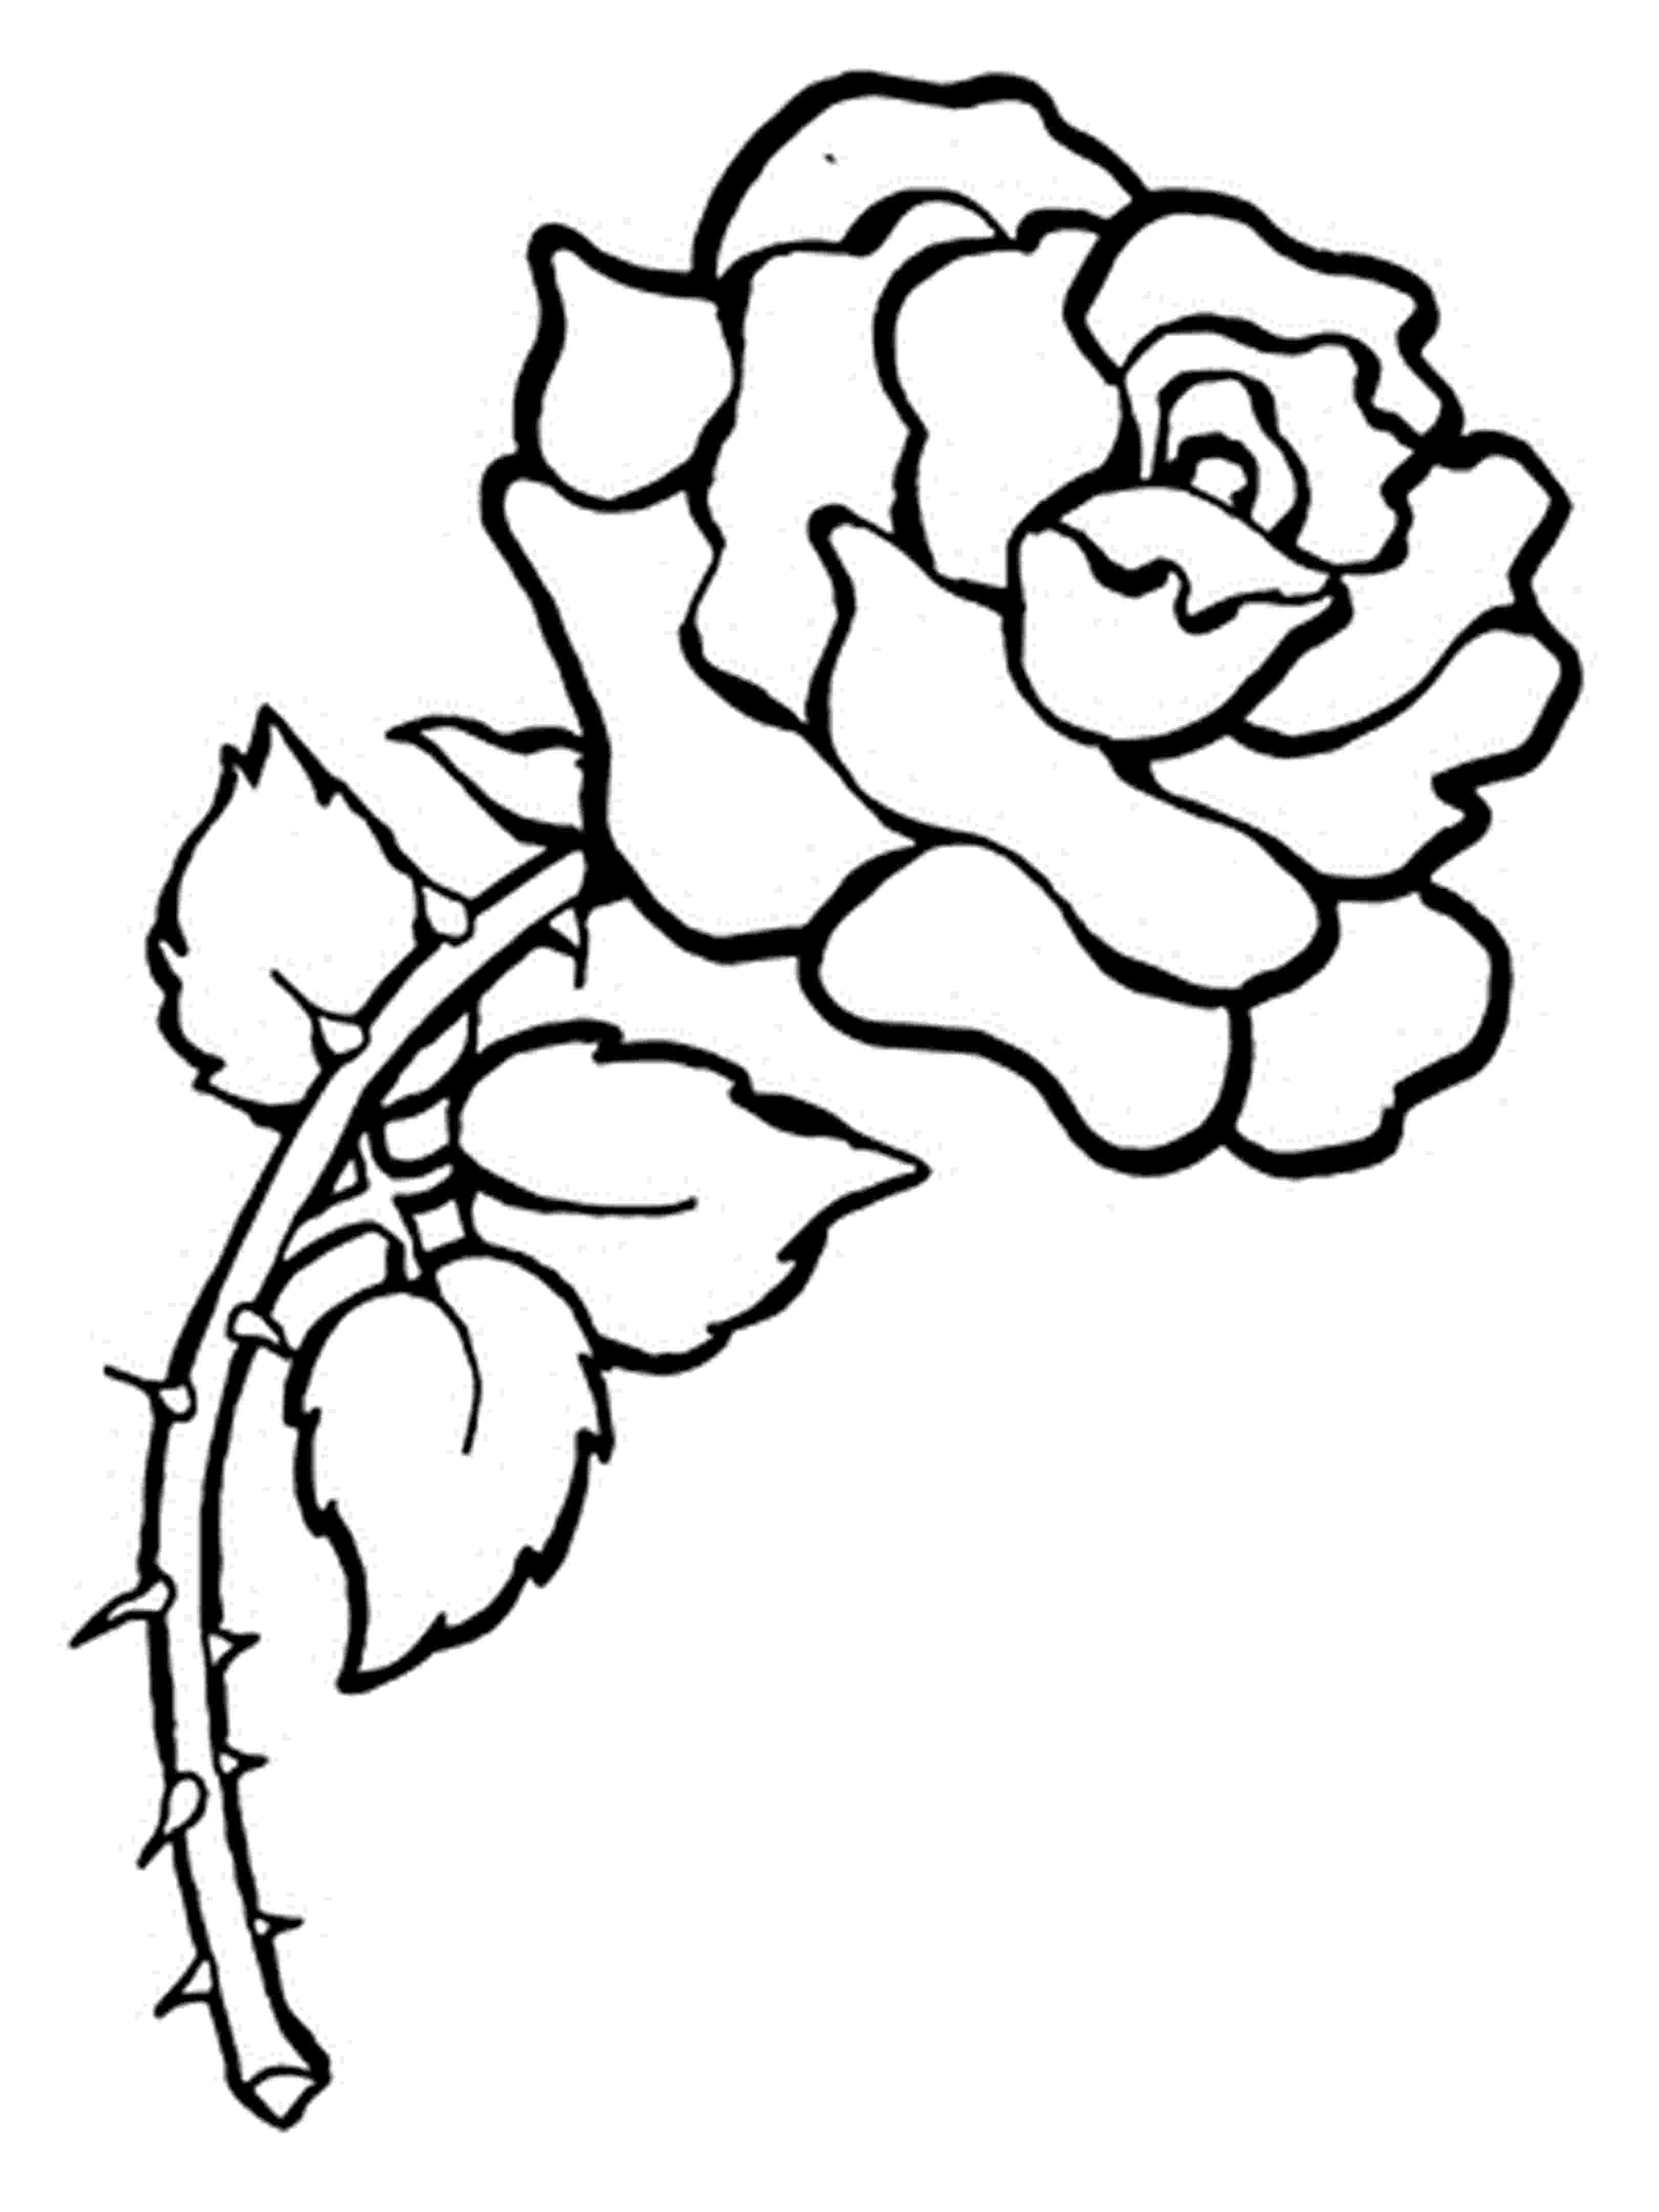 flowers printable coloring pages free printable flower coloring pages for kids best coloring pages printable flowers 1 1